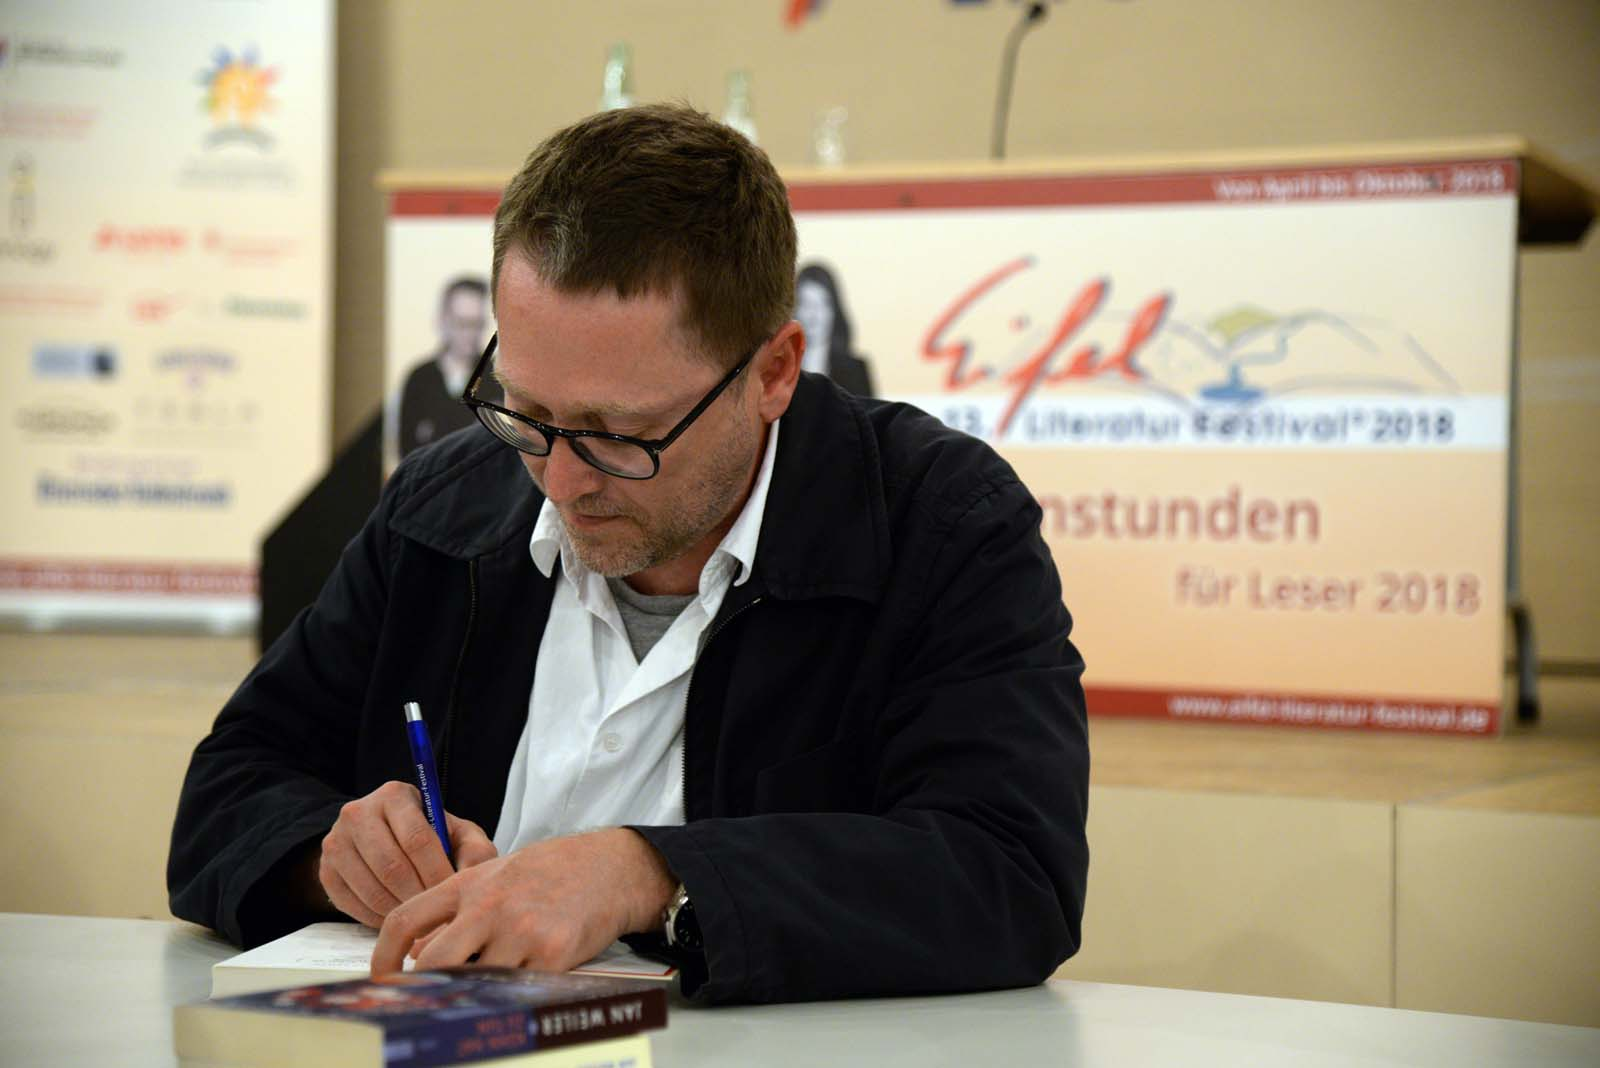 Jan Weiler am 8. Juni 2018 in Prüm